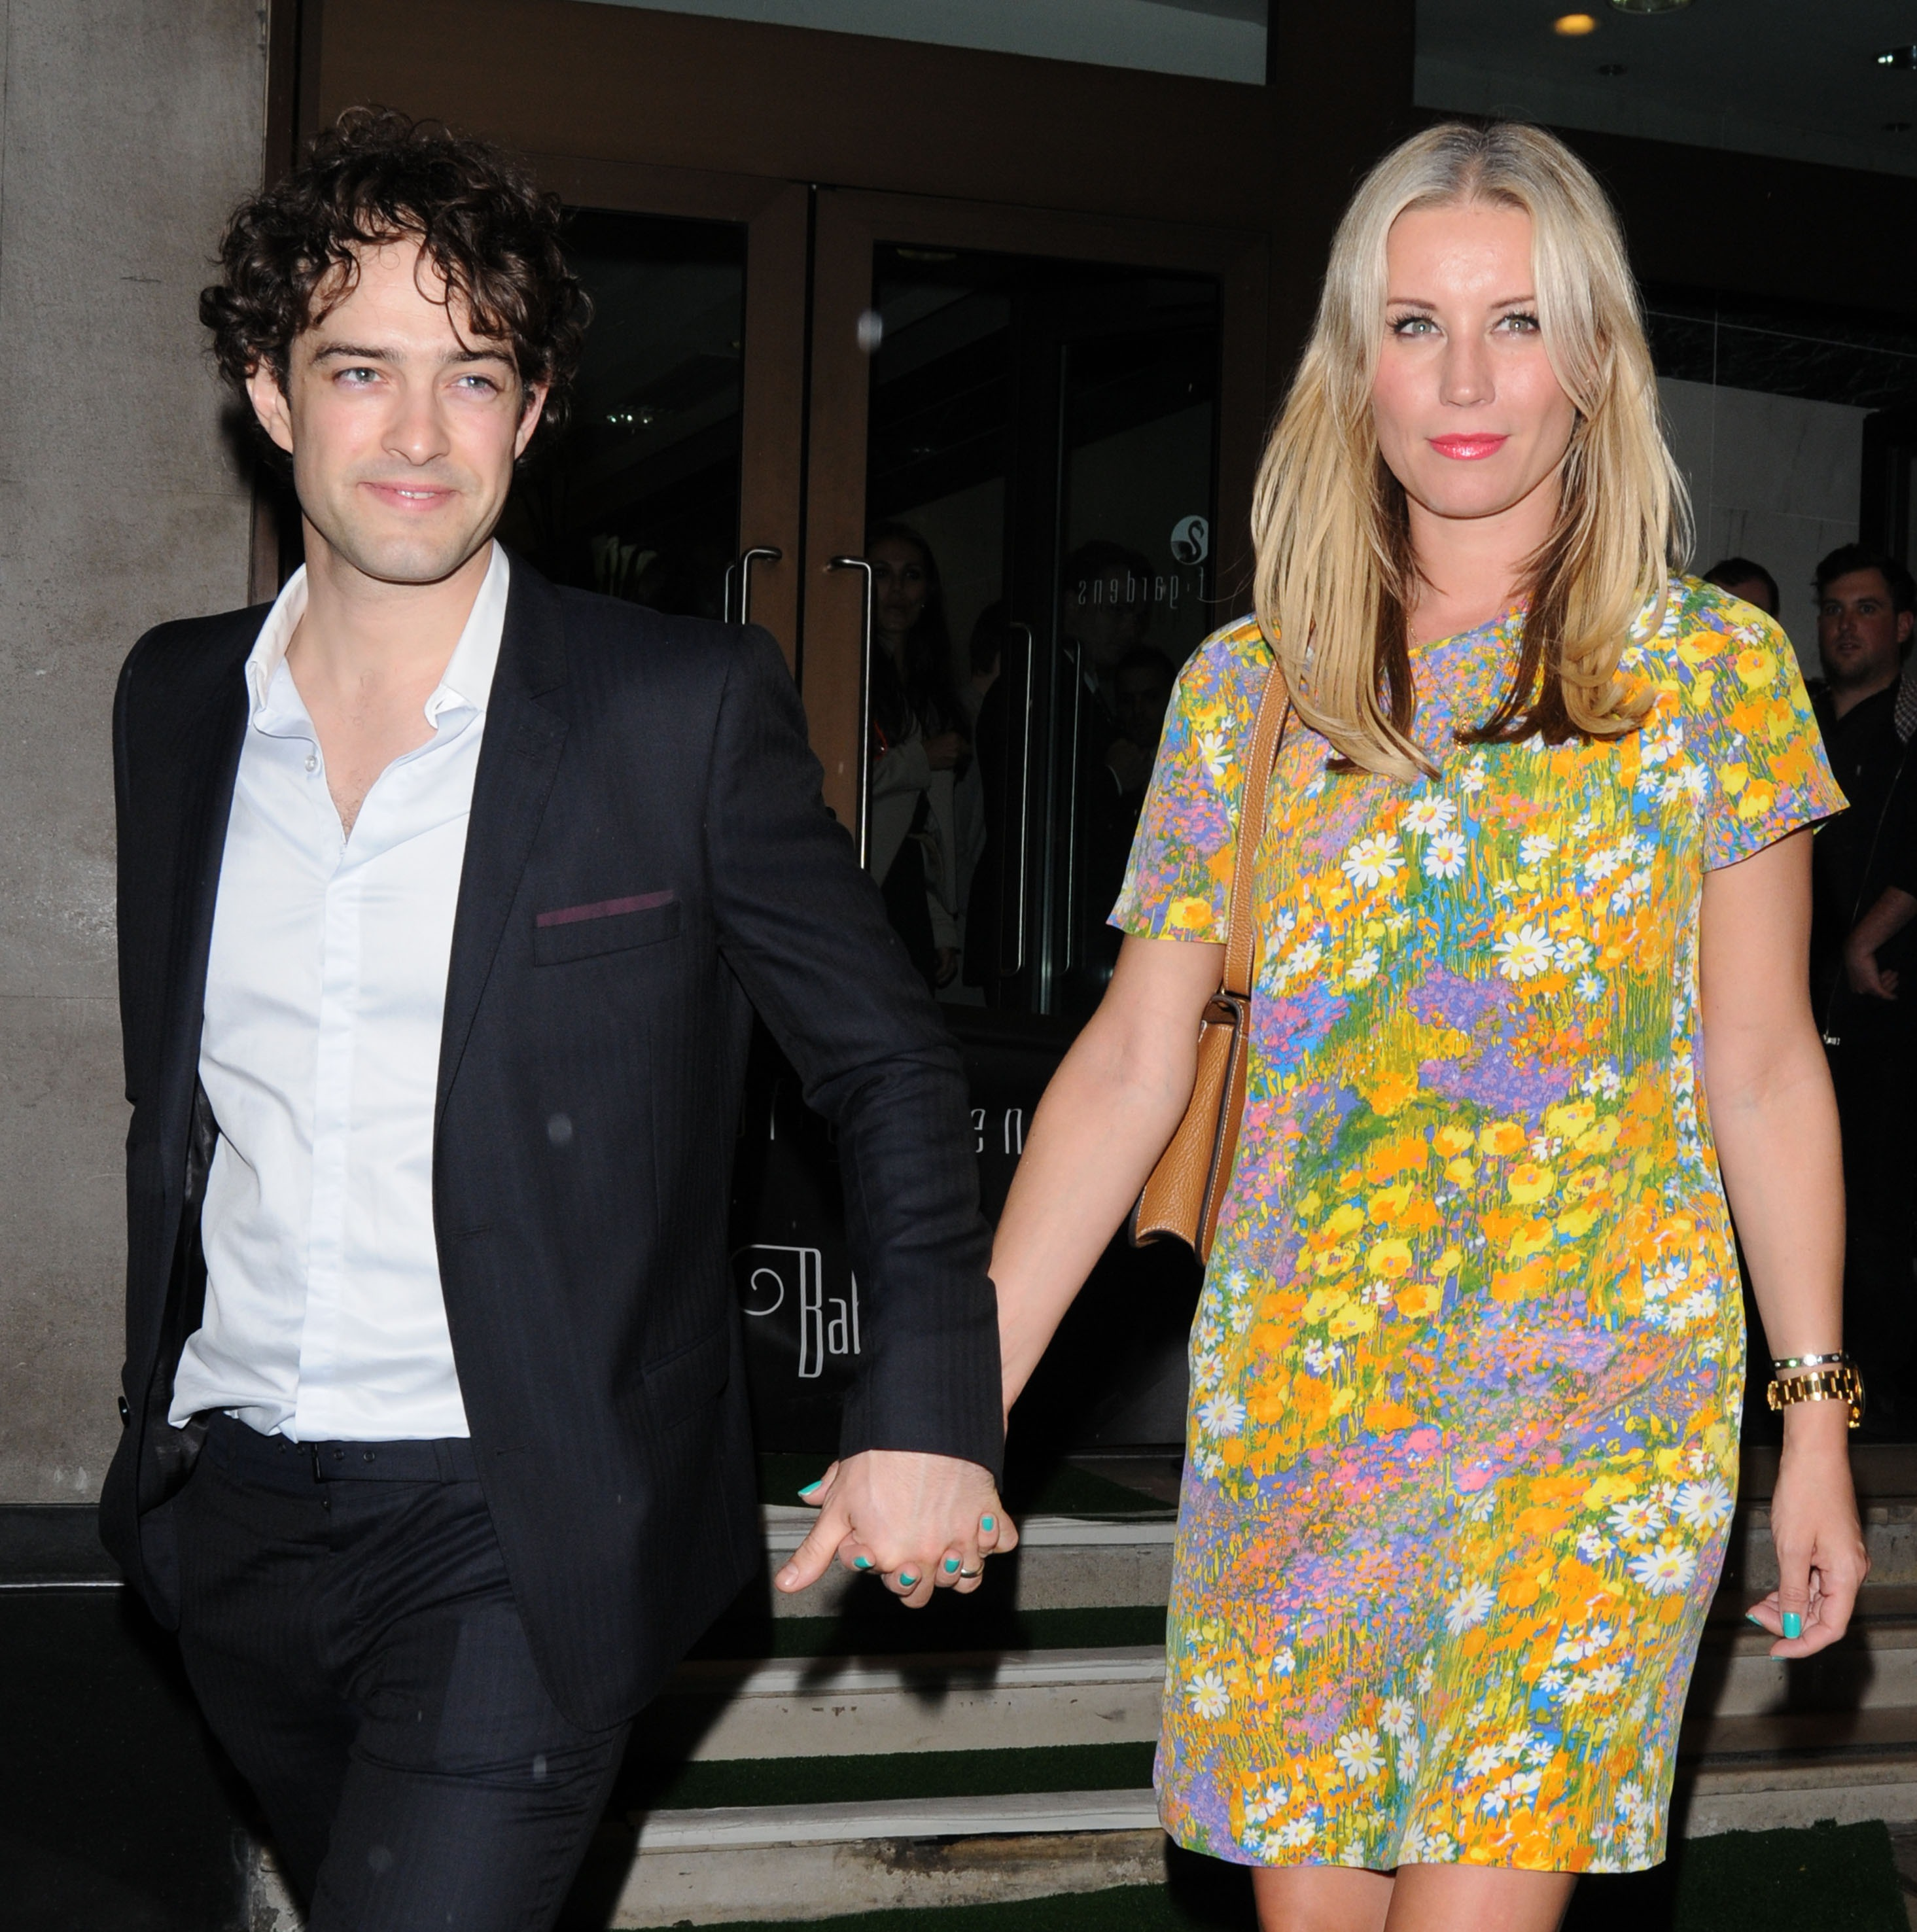 LONDON, UNITED KINGDOM - JUNE 21: Denise Van Outen and Lee Mead leaving The Pre-Wimbledon Party held at The Roof Gardens on June 21, 2012 in London, England. (Photo by Sylvia Linares/FilmMagic)